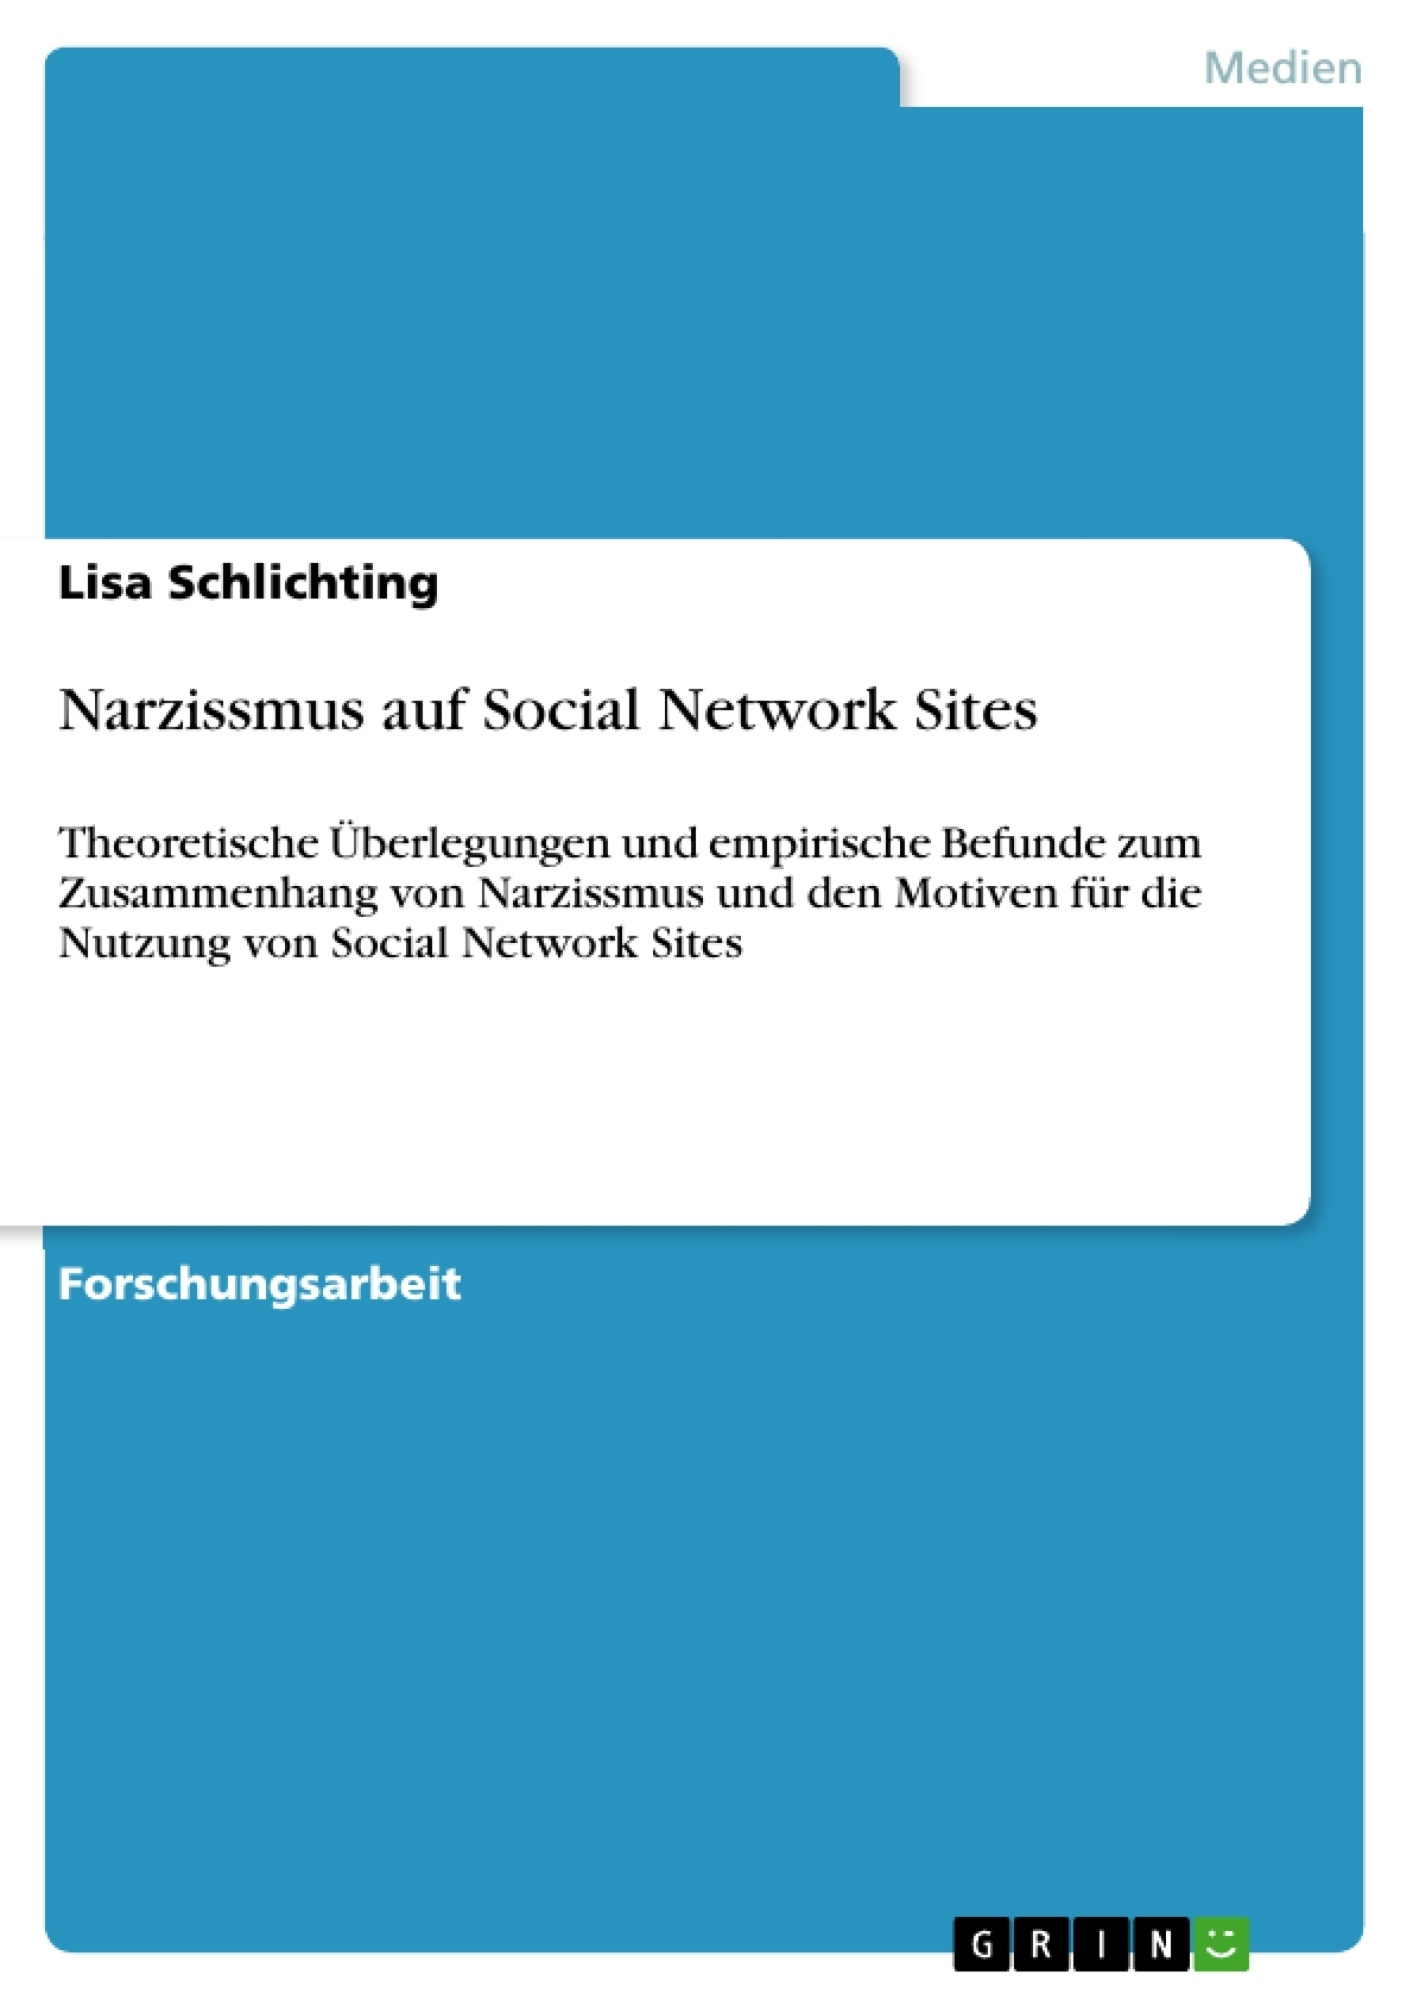 Titel: Narzissmus auf Social Network Sites